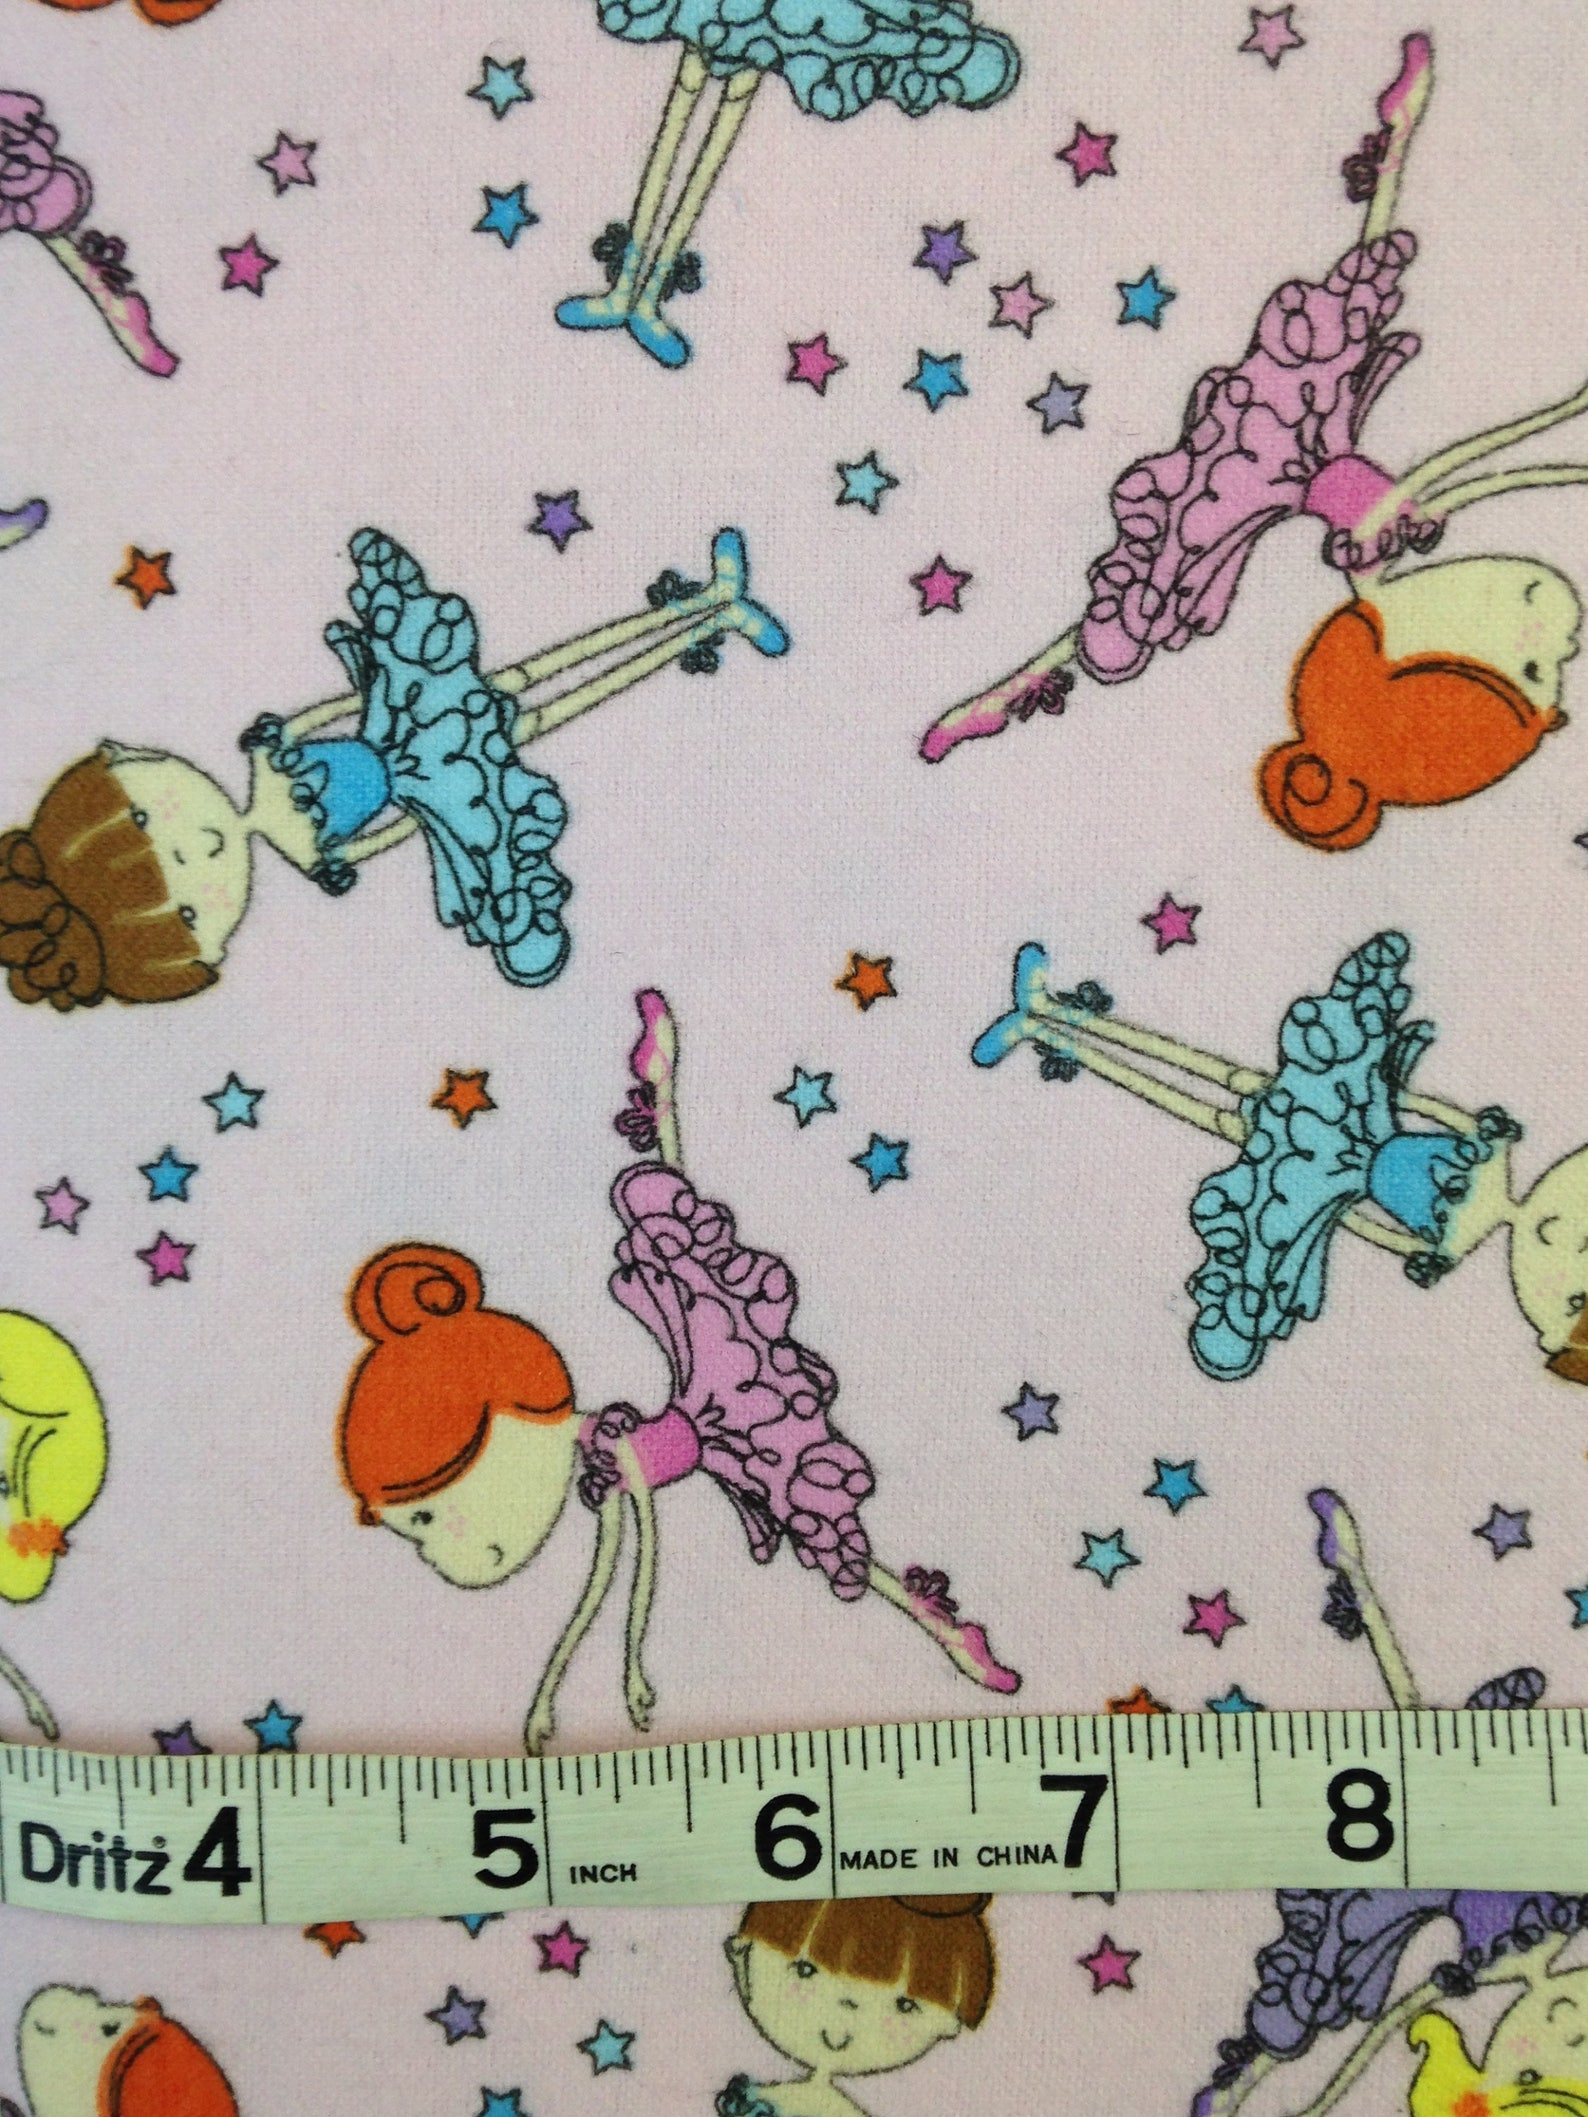 dancing ballerina girl, stars, ballet shoes, purple pink flannel, dancing fairy fabric, little girl fabric